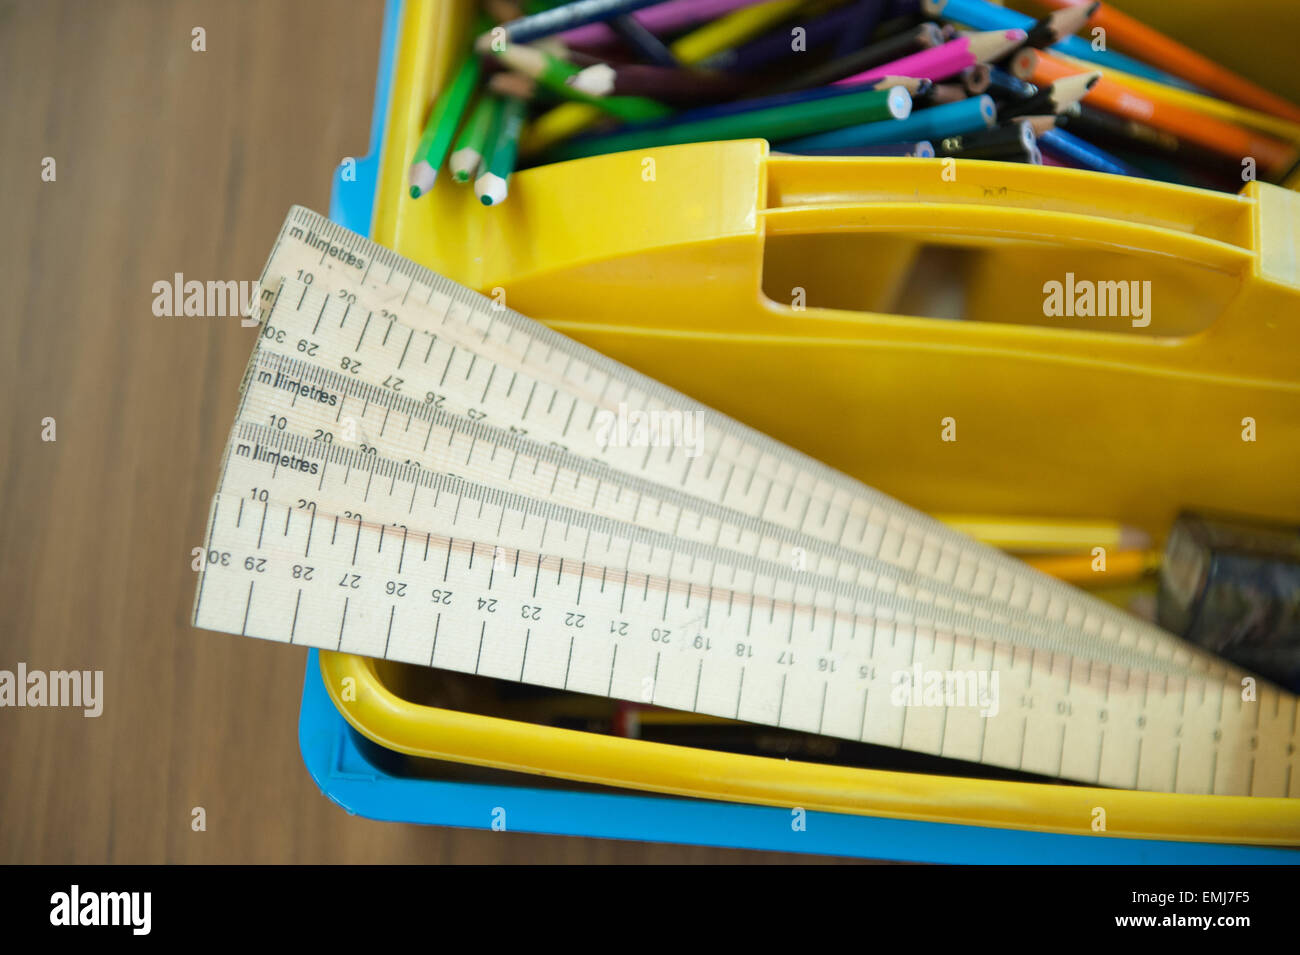 A box of rulers and coloured pencils in a UK classroom Stock Photo